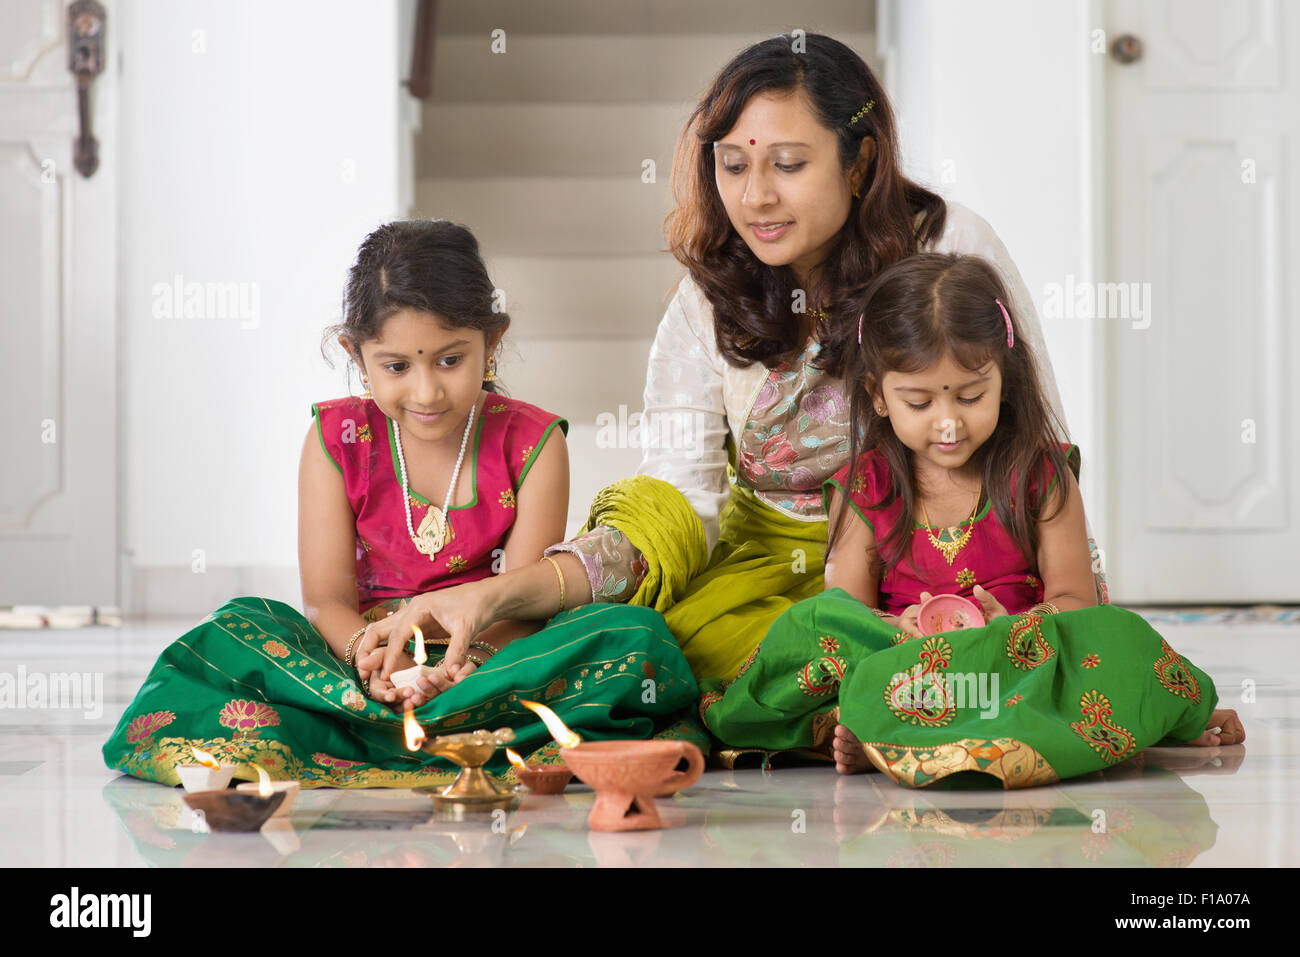 Indian family in traditional sari lighting oil lamp and celebrating Diwali, fesitval of lights at home. - Stock Image